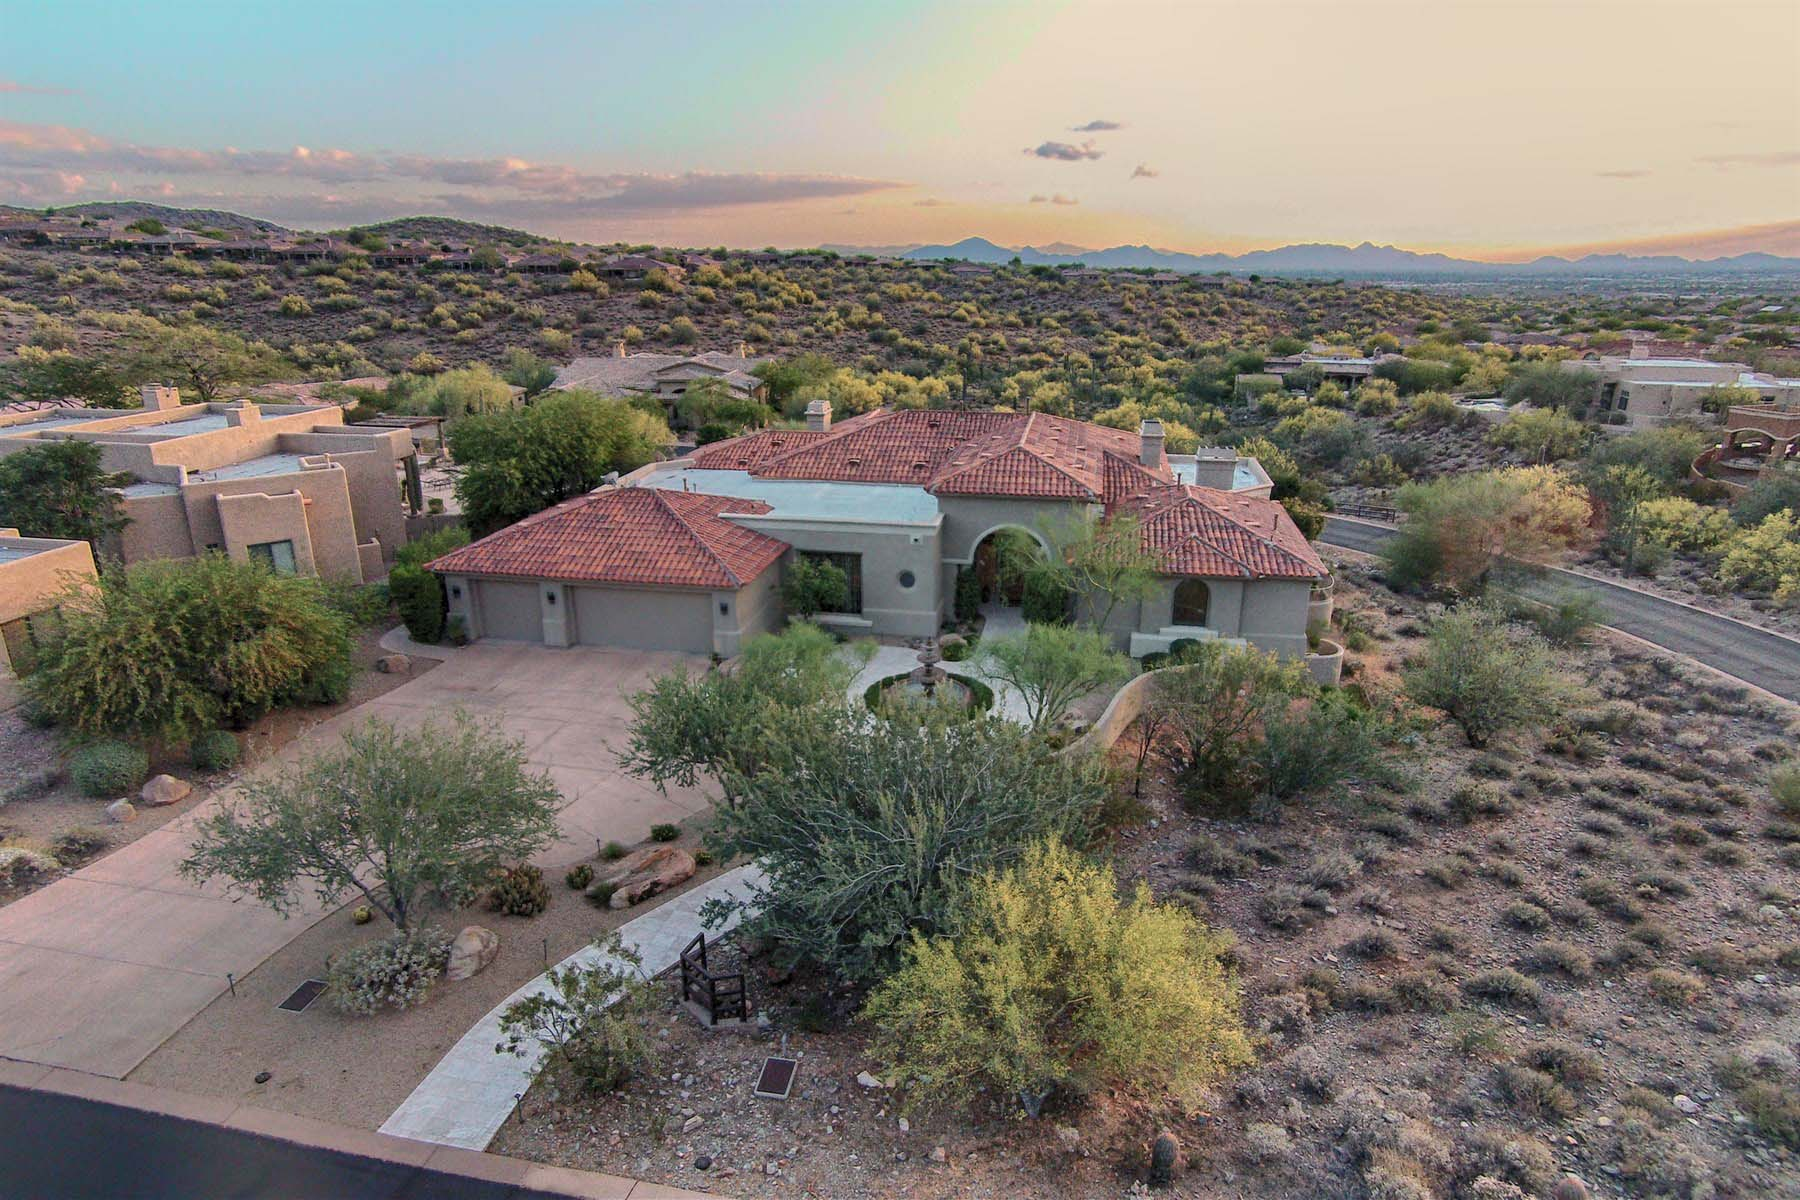 Property For Sale at Exquisite Mediterranean style home nestled in a secluded canyon.